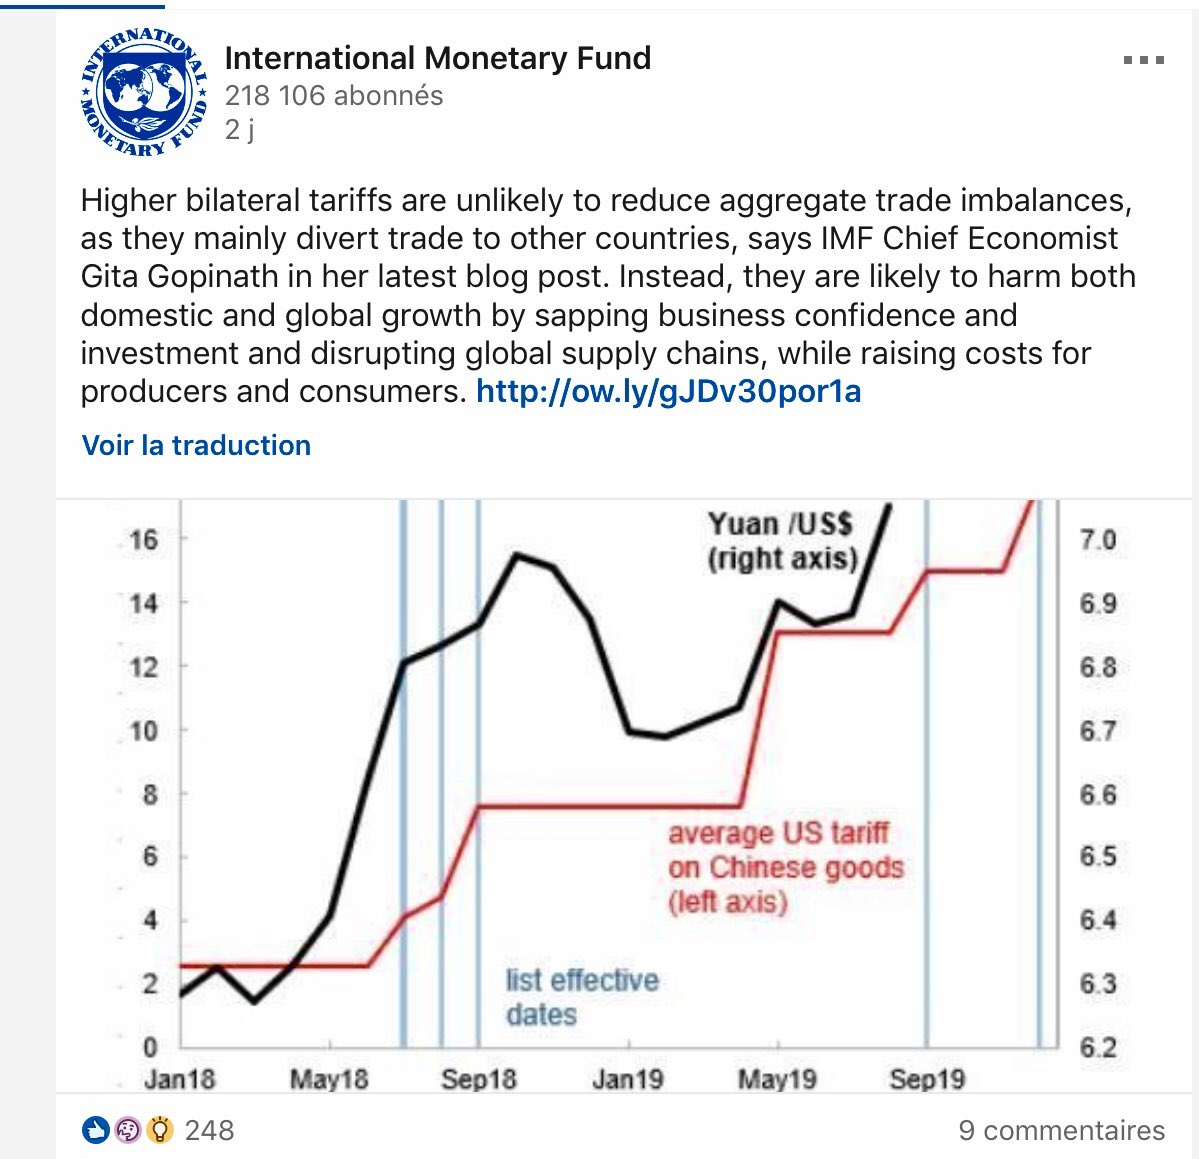 Blunt but convincing anti-#Trump Blog of #IMF by #GitaGopinath et al. Published just before the #G7 in #Biarritz: http://ow.ly/gJDv30por1a